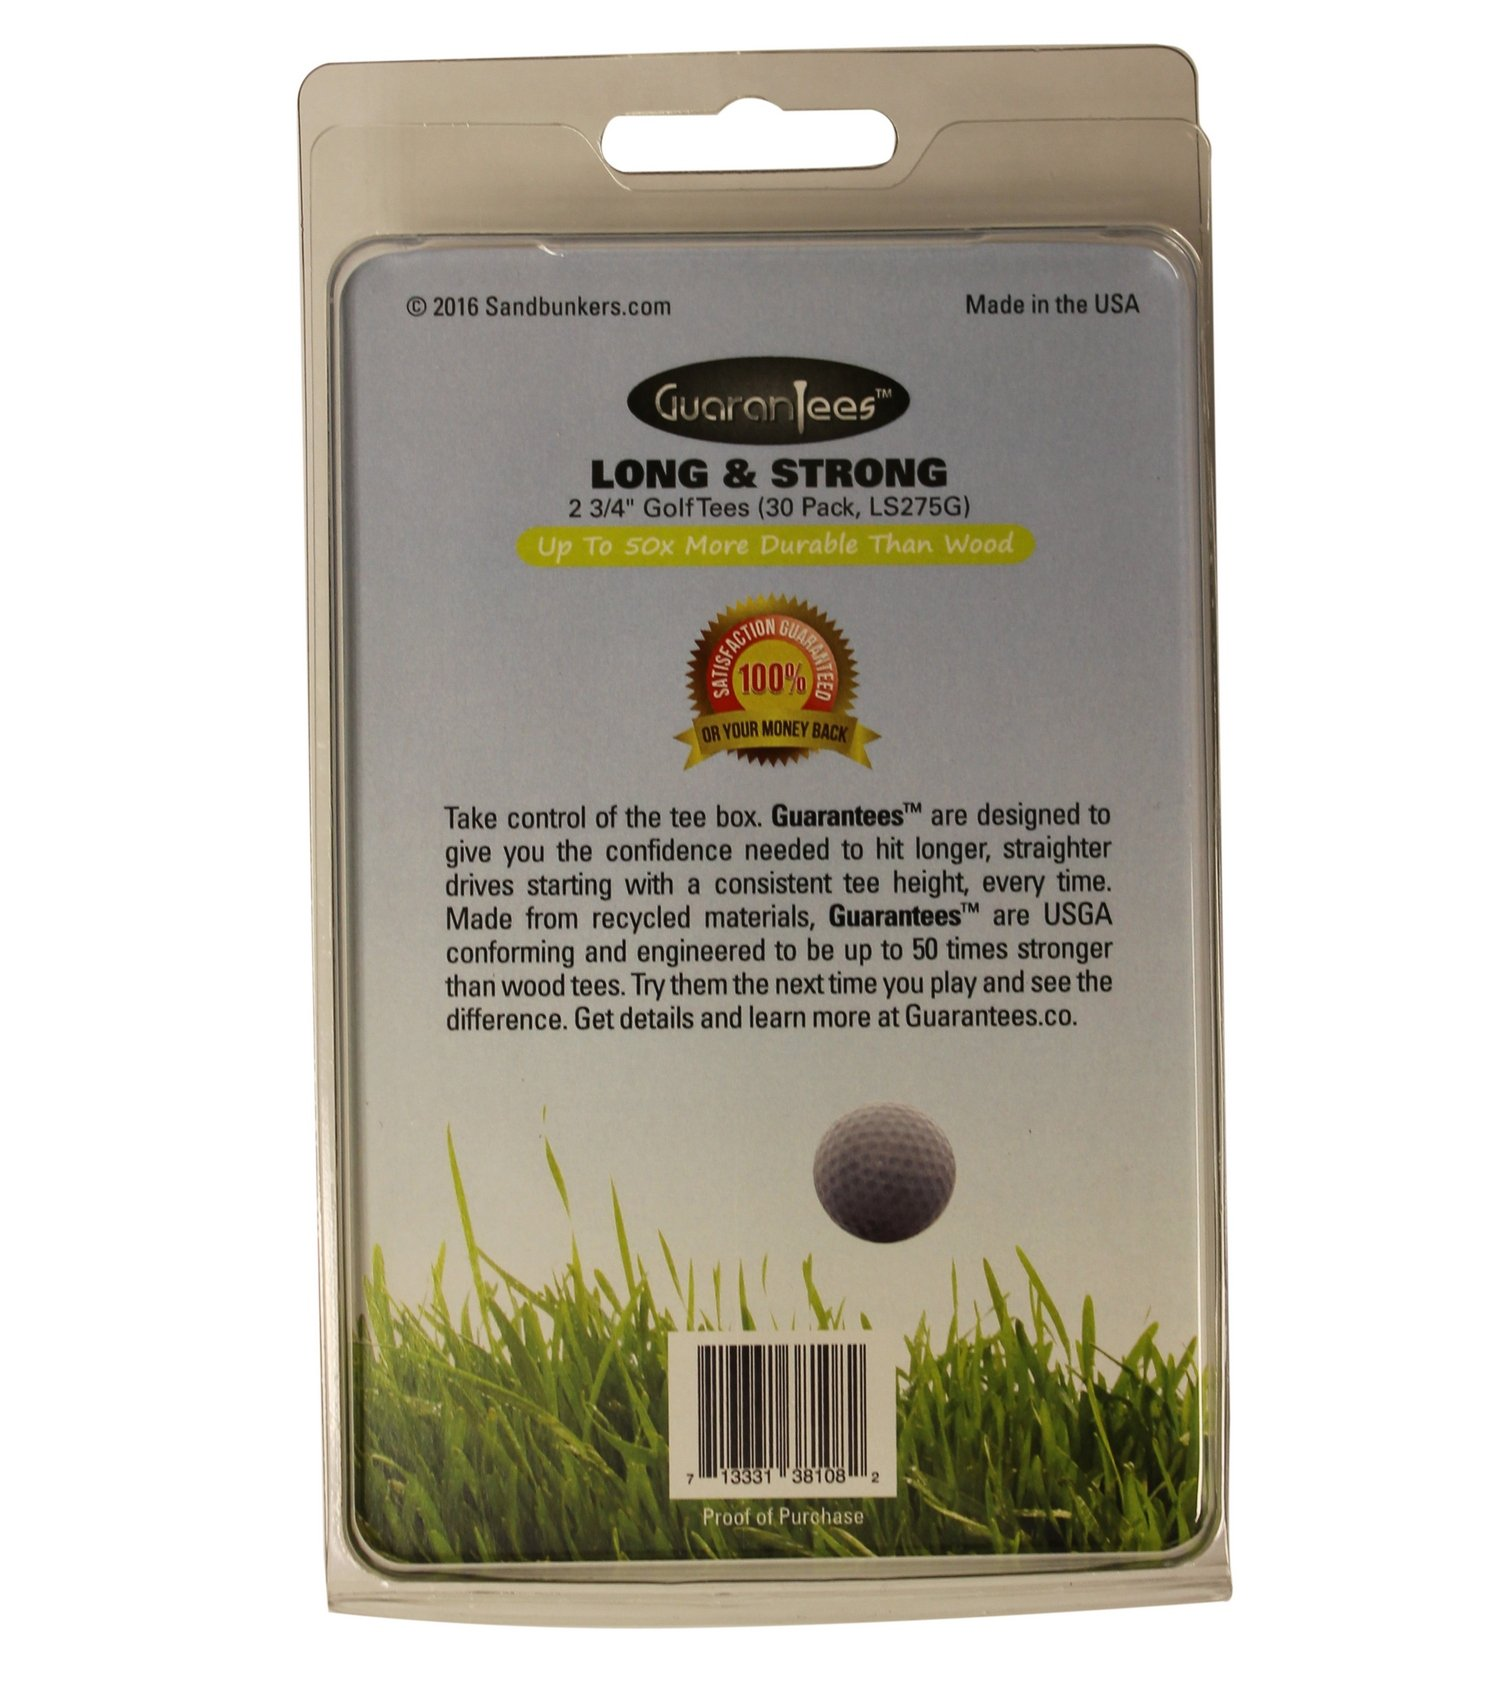 Green Golf Tees by GuaranTees, 2 3/4'' Virtually Unbreakable Plastic, 30 Pack Neon Flourescent Color, U.S. Made by Sandbunkers (Image #2)